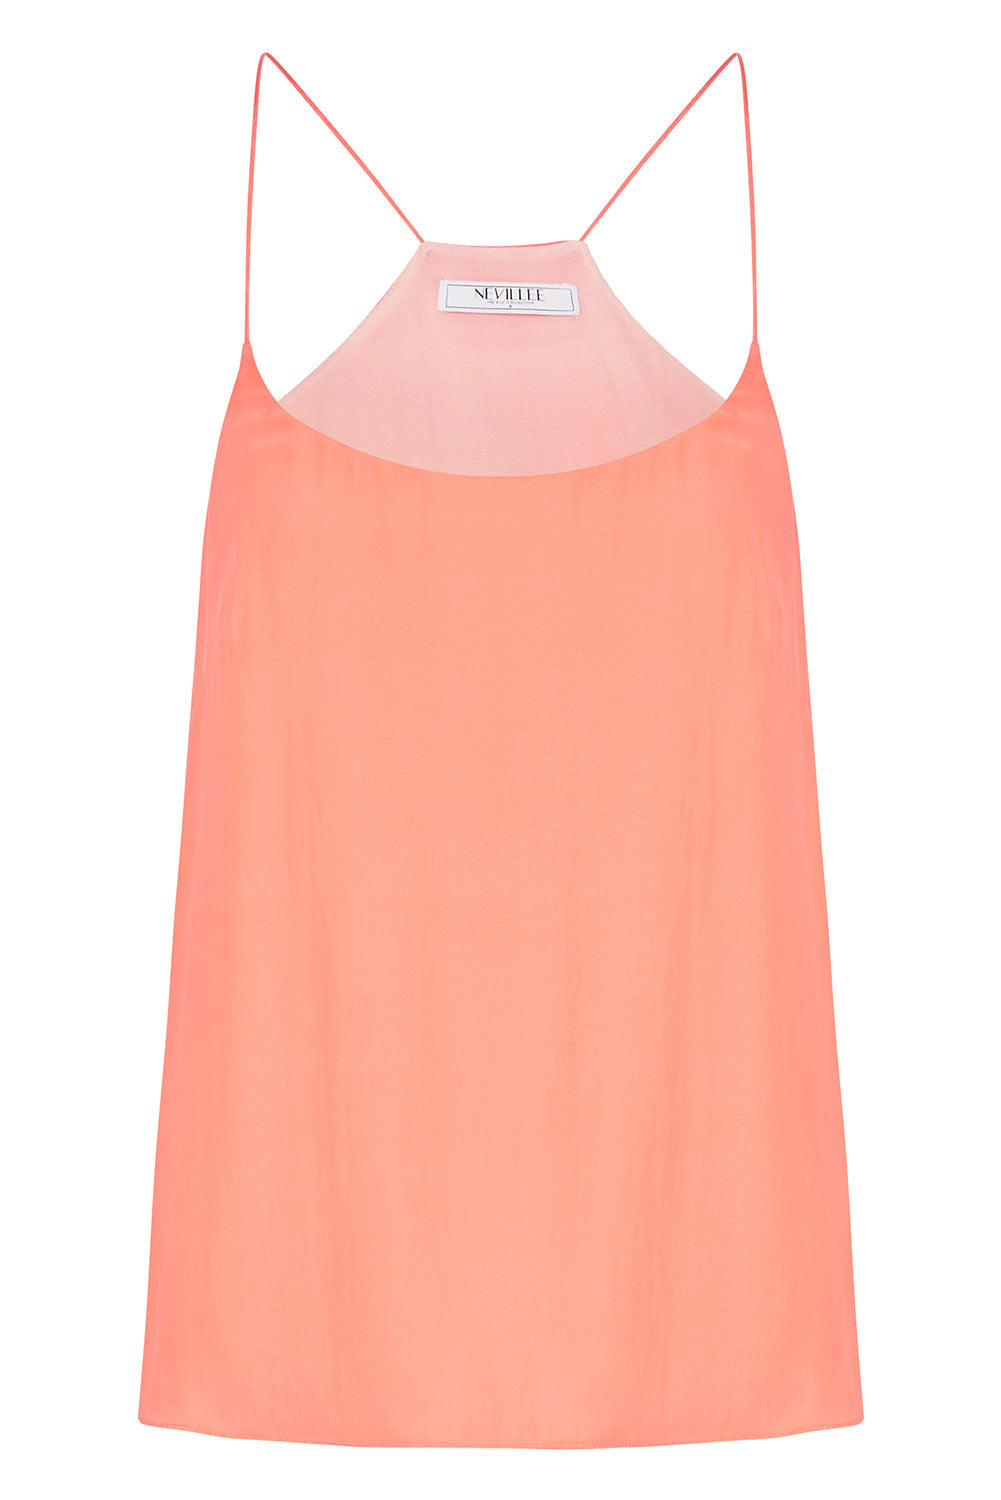 THE OFF DUTY CAMISOLE - CORAL